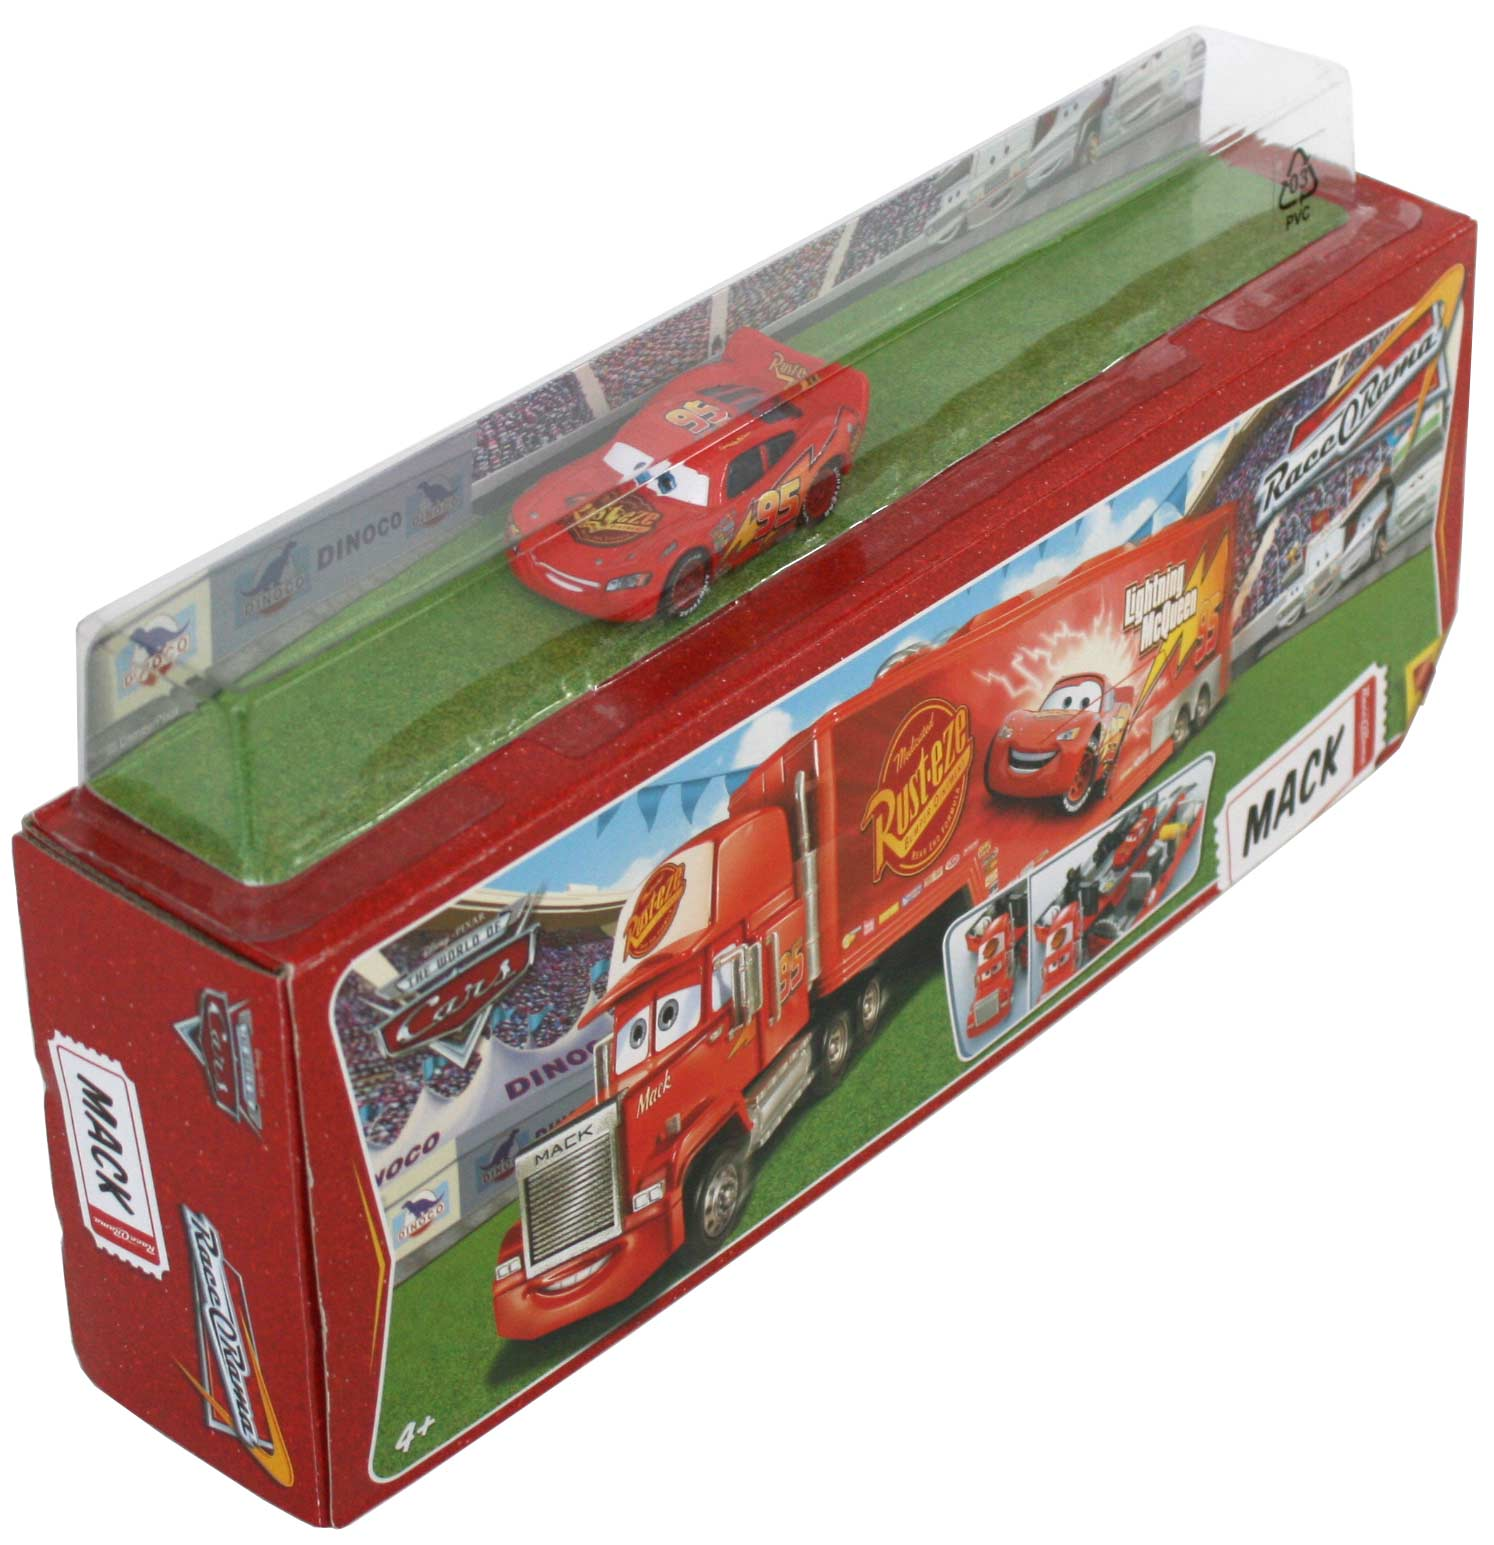 Mack - Cars - Mattel (Packaging)